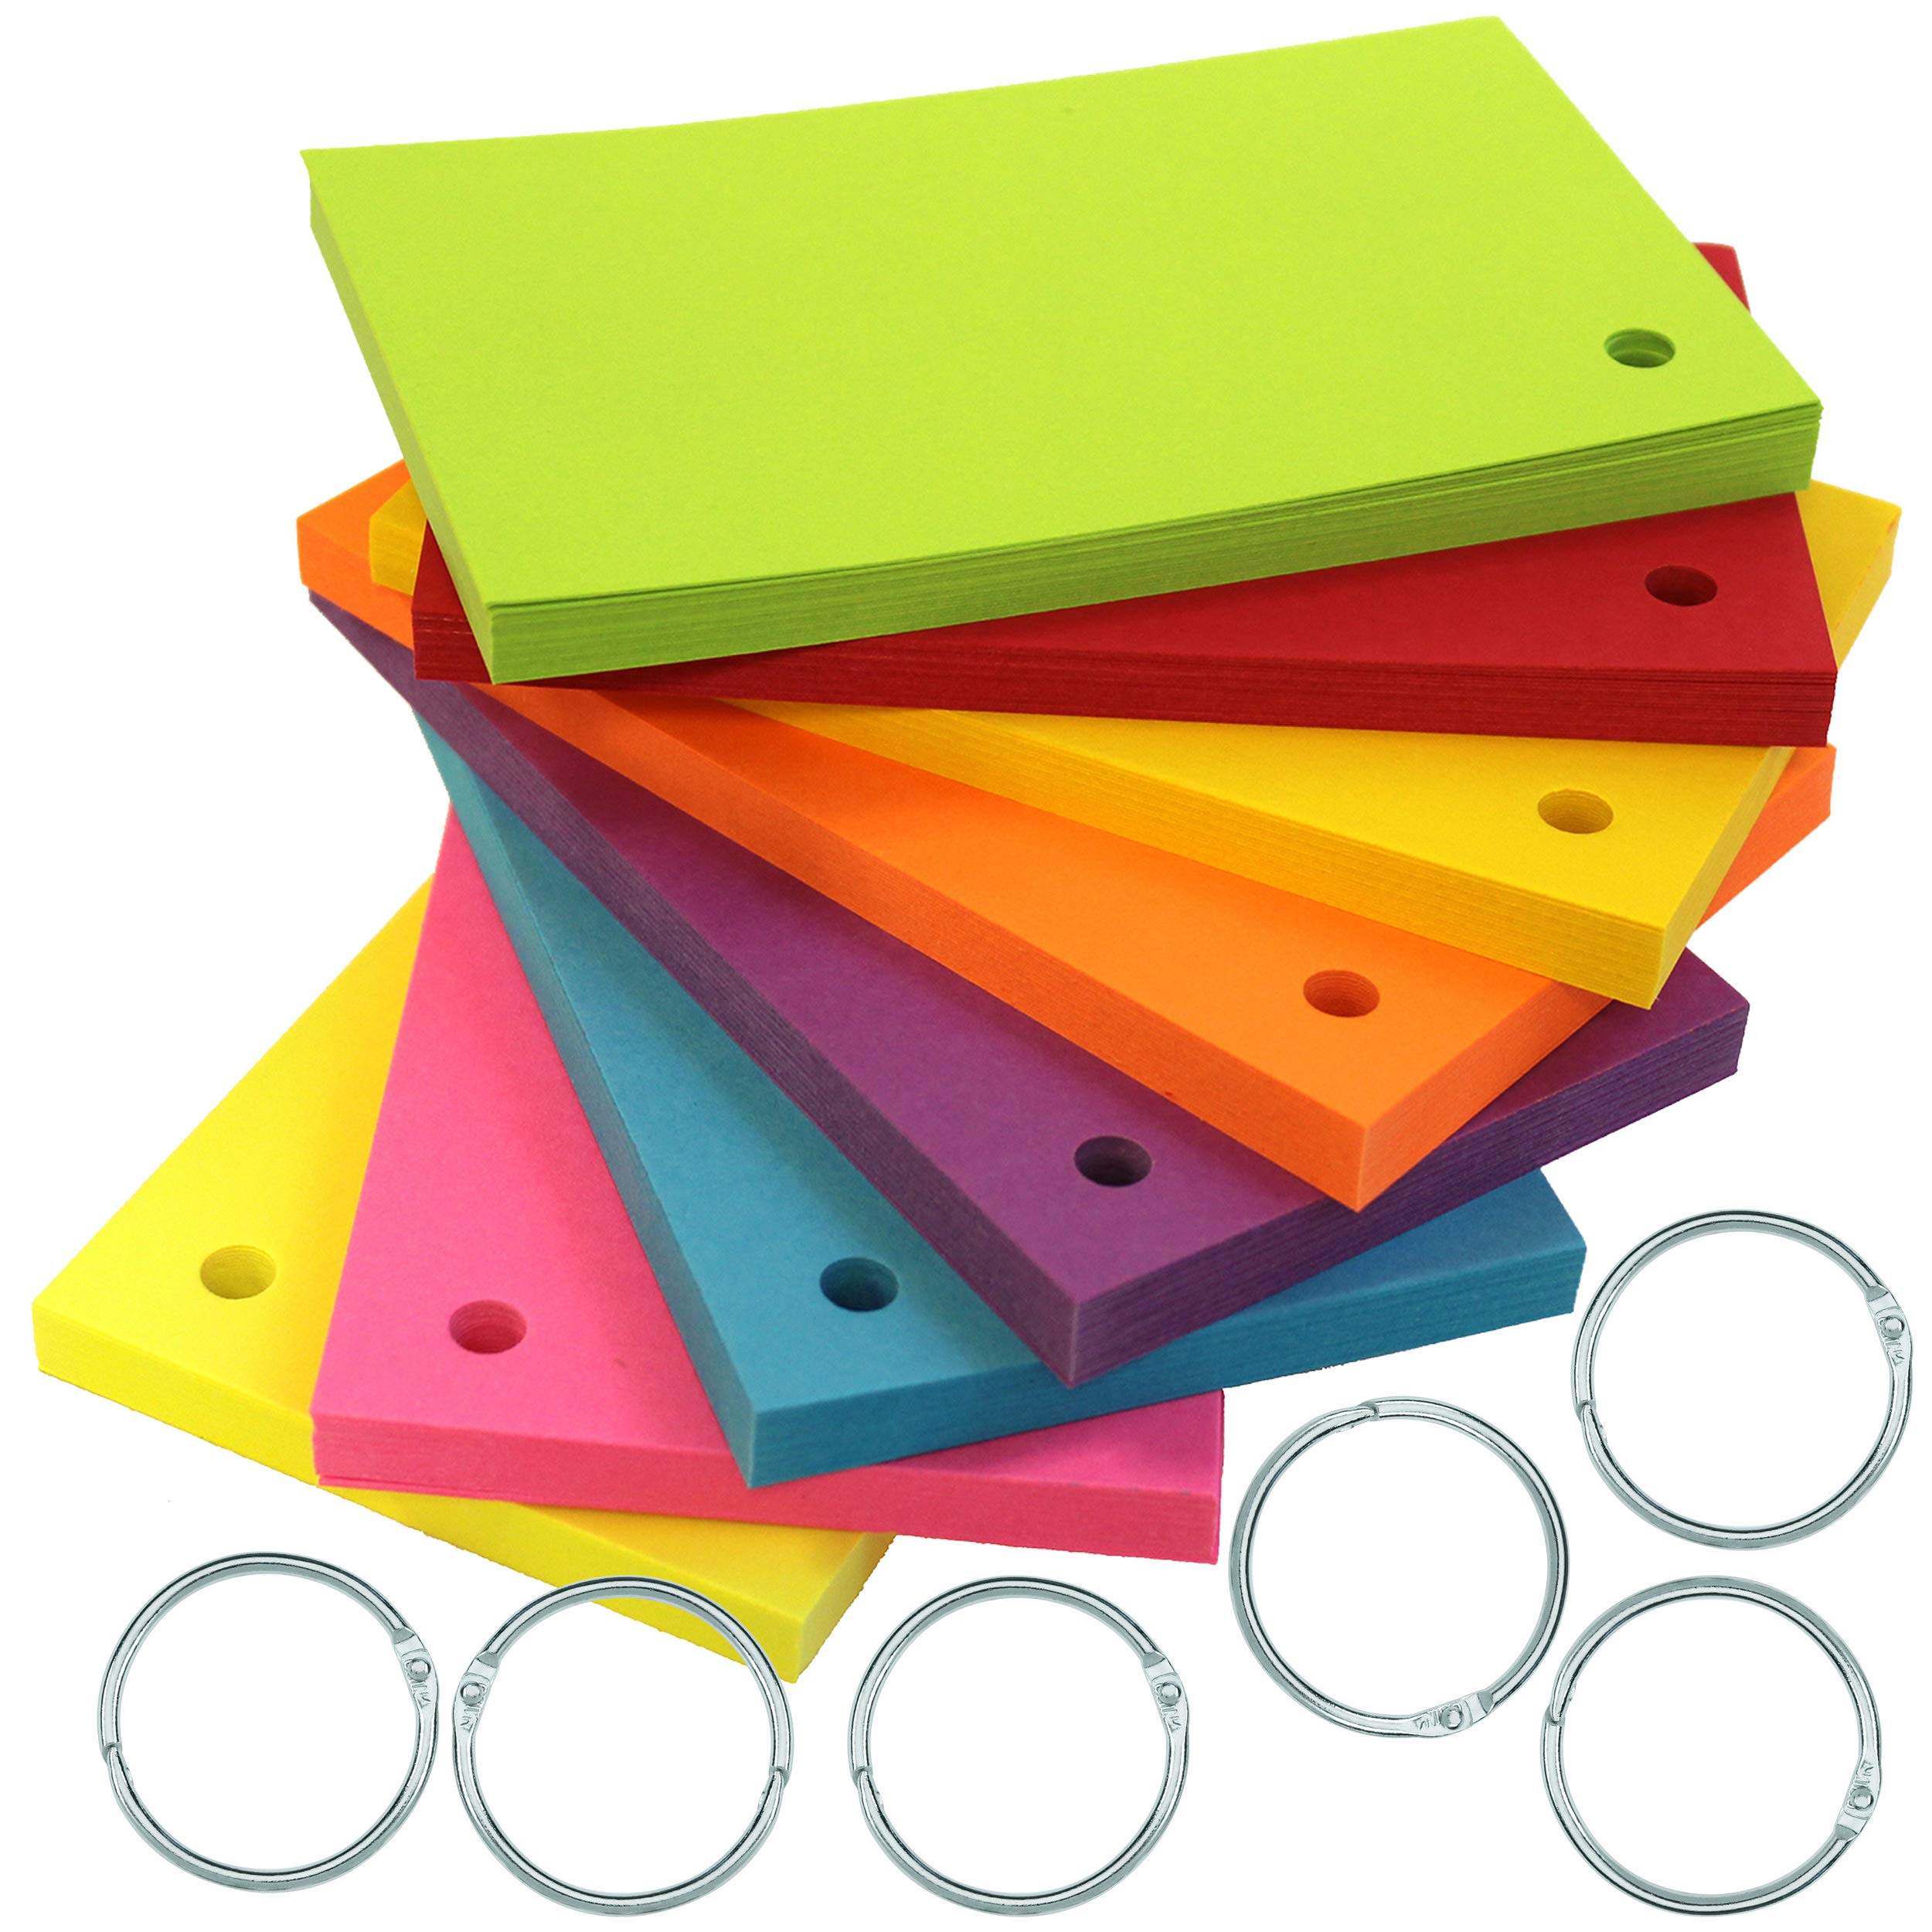 Debra Dale Designs 3'' x 5'' Astrobright Heavy 100# Card Stock - Single Hole Punched with 6 Metal Binder Rings - 160 Cards - 20 Cards in 8 Colors - More Color Choices for Organization of Studying.